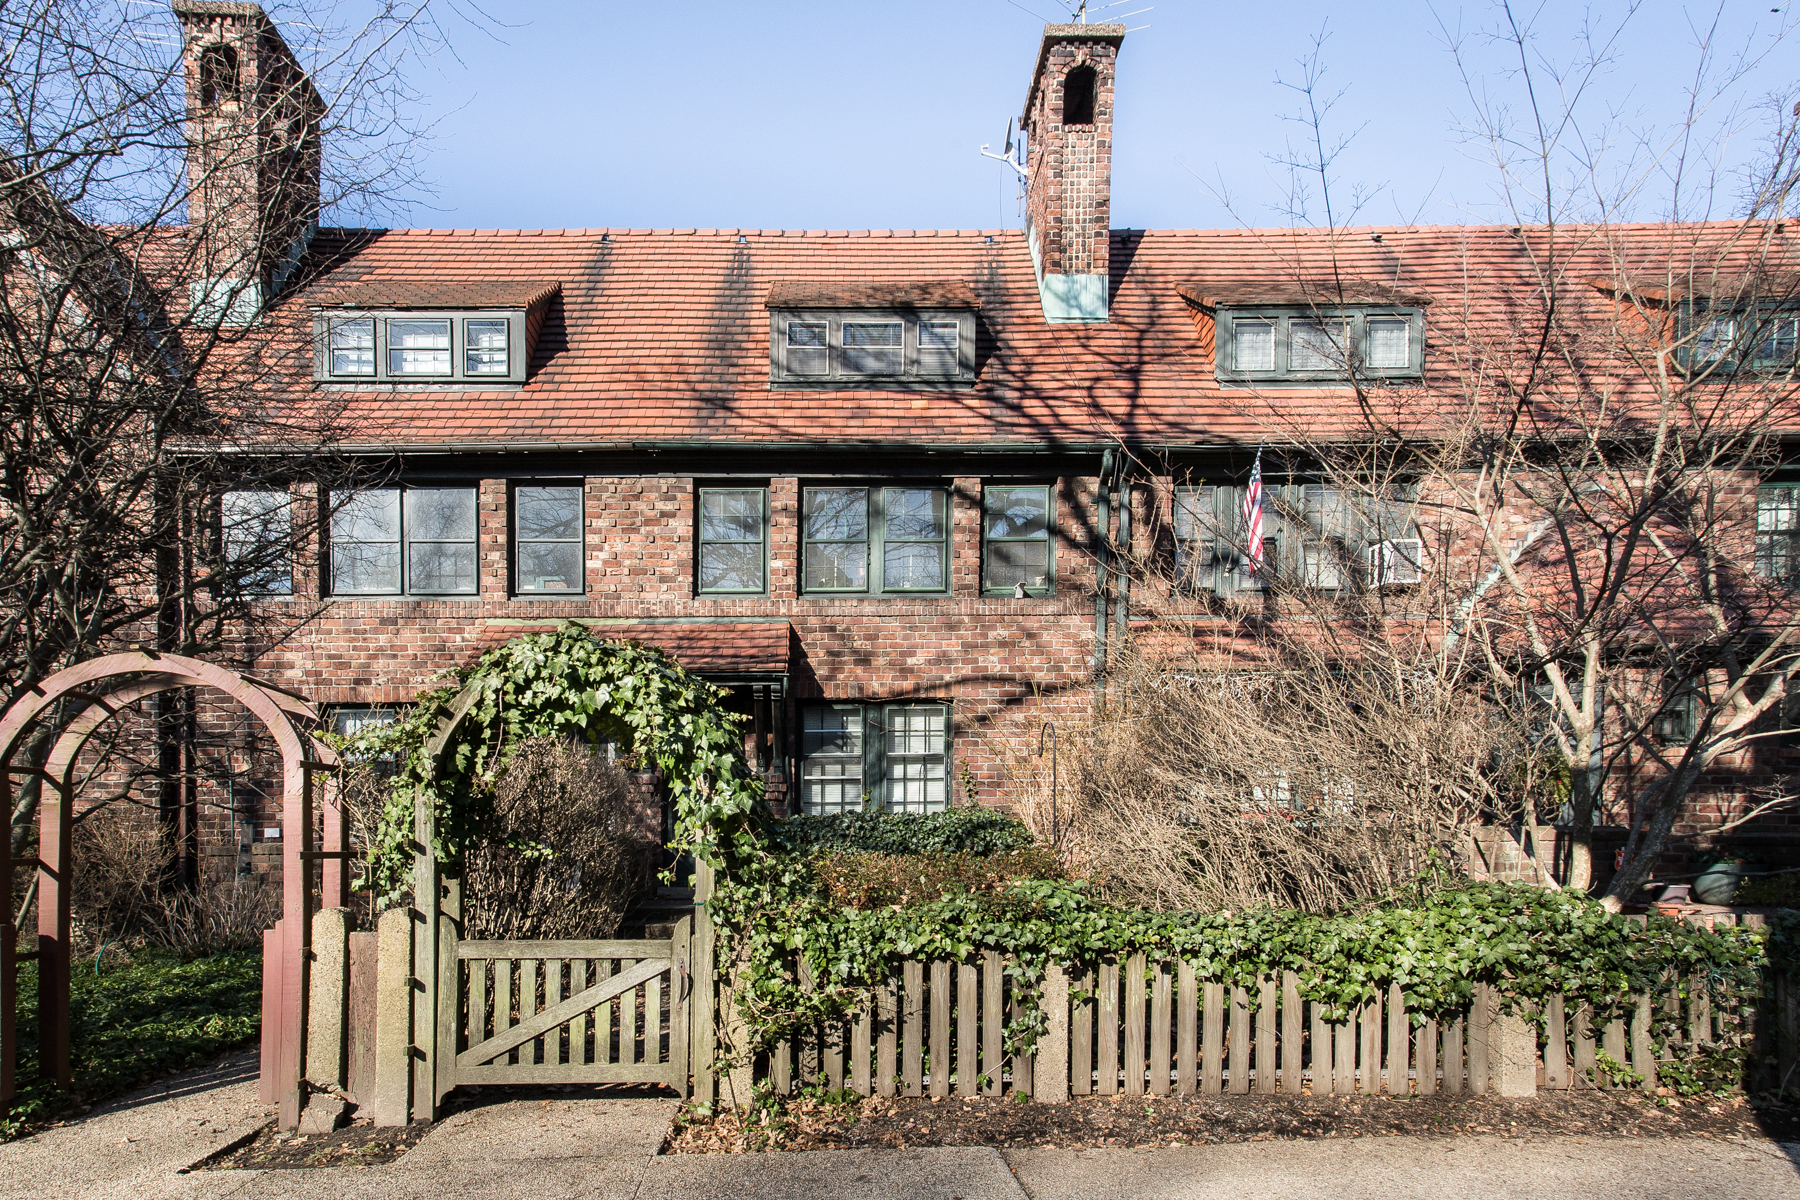 """Single Family Homes for Active at """"FOREST HILLS GARDENS ATTERBURY TAPESTRY BRICK TOWNHOME"""" 199 Puritan Avenue, Forest Hills Gardens, Forest Hills, New York 11375 United States"""